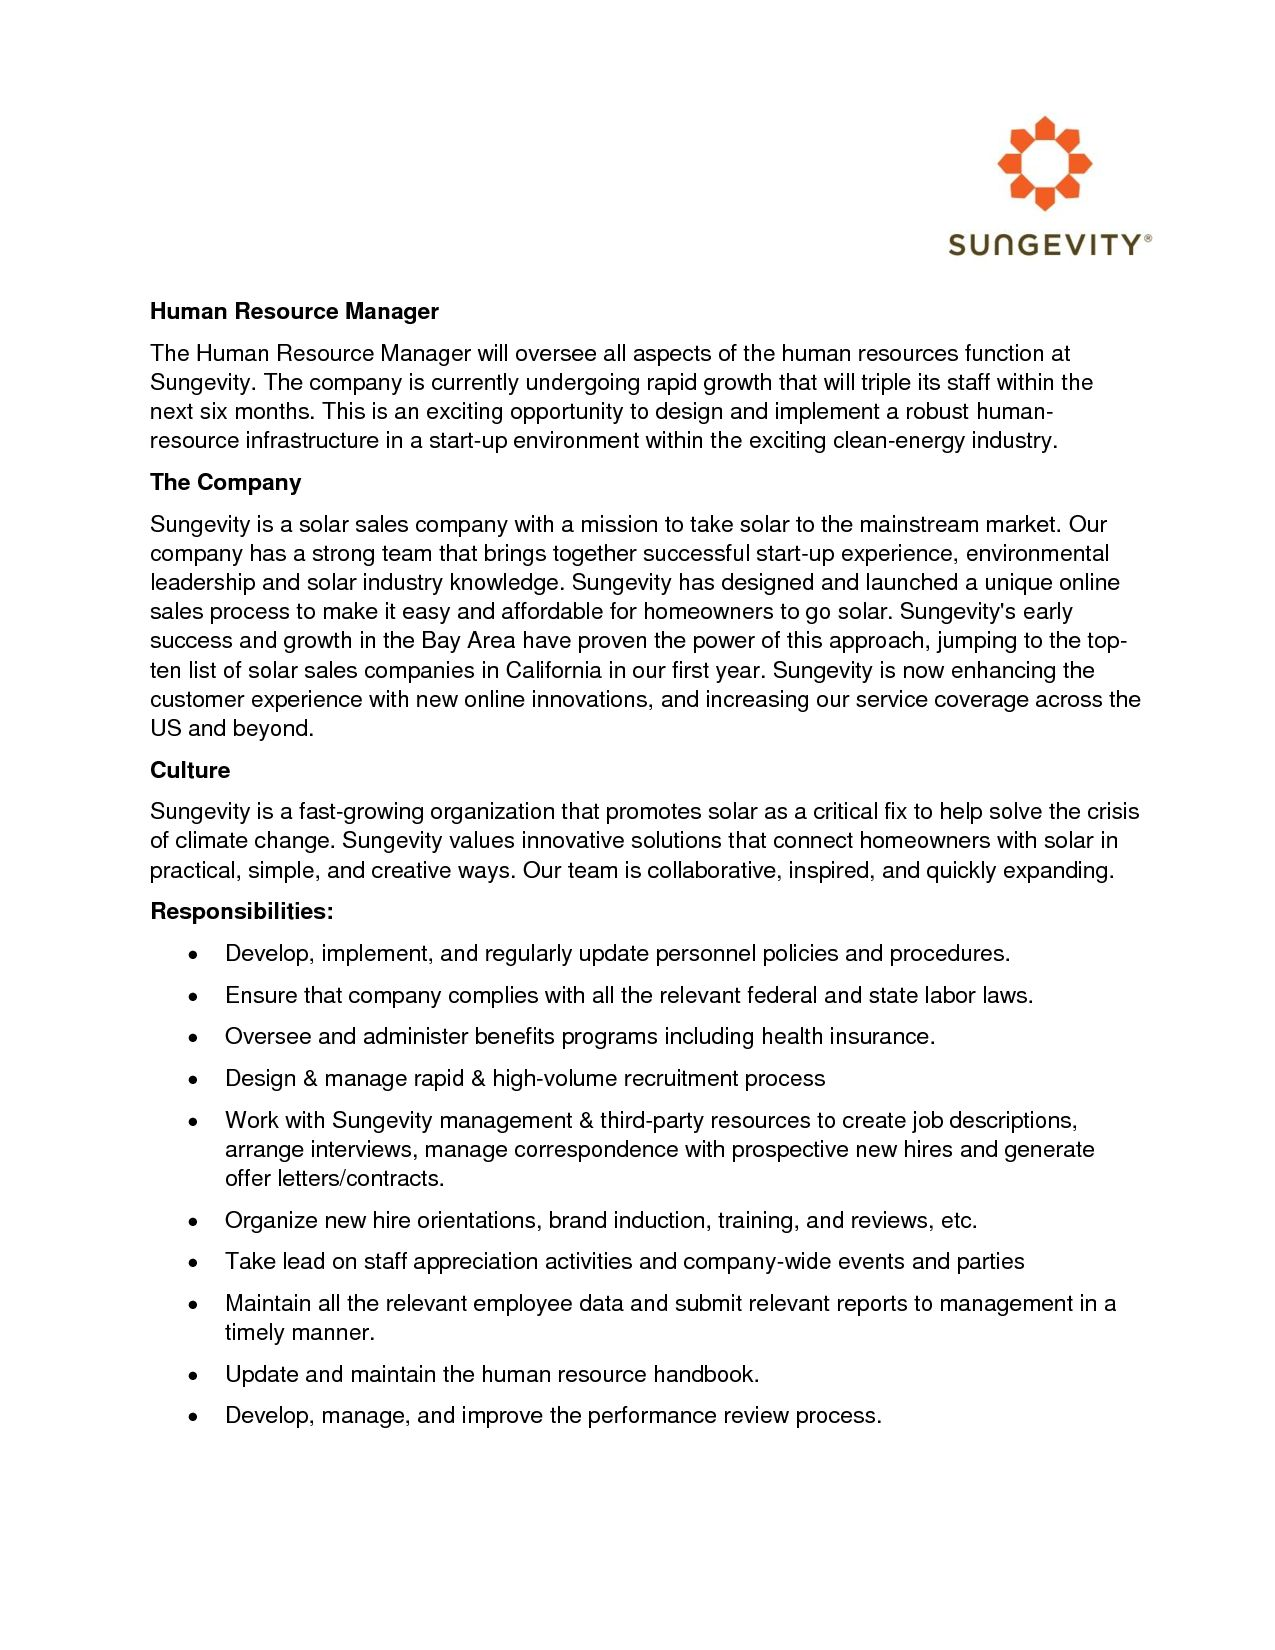 Process Leader Cover Letter 23 Human Resources Cover Letter Human Resources Cover Letter